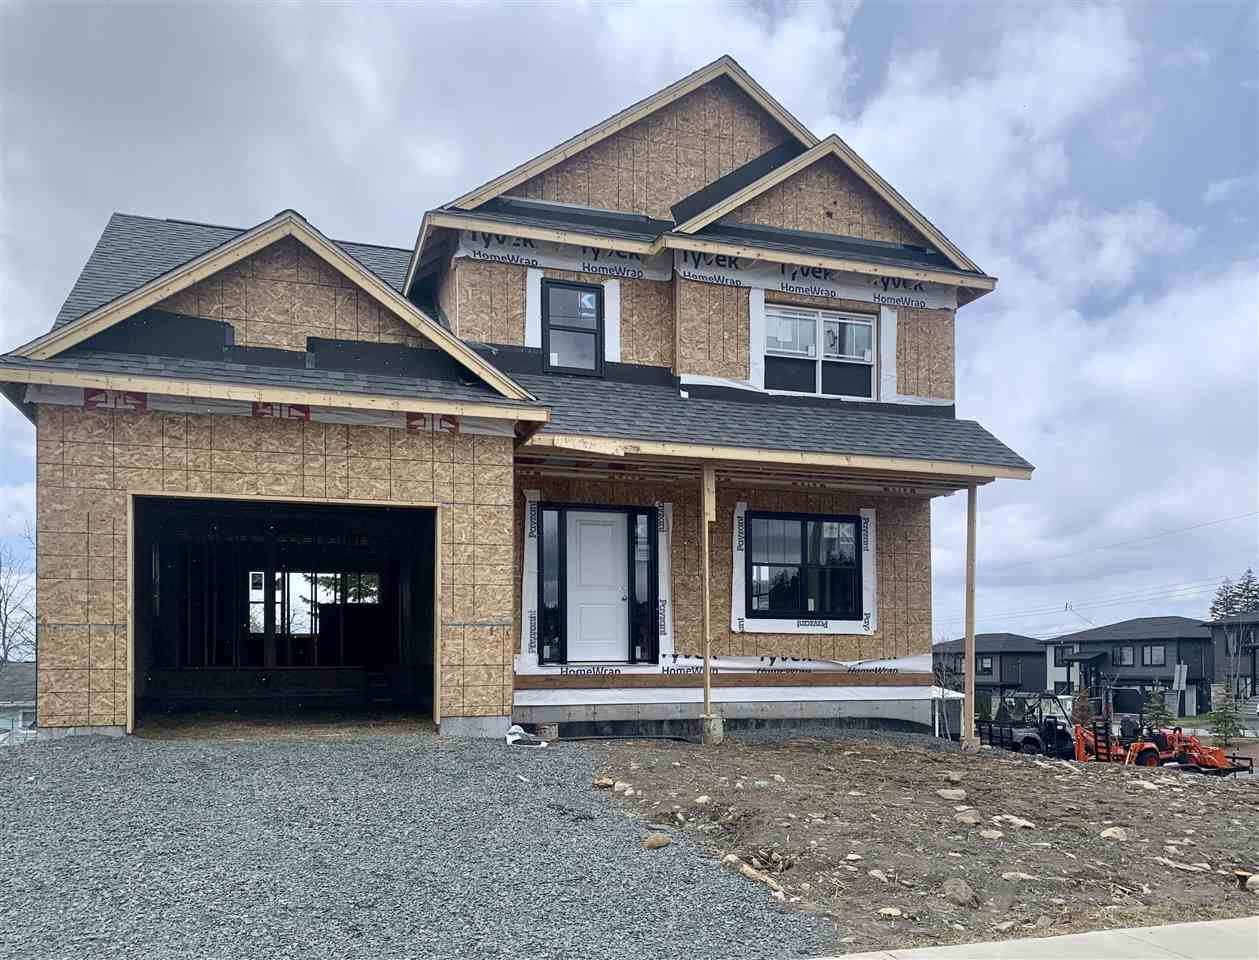 Main Photo: Lot 44 160 Marigold Drive in Sackville: 26-Beaverbank, Upper Sackville Residential for sale (Halifax-Dartmouth)  : MLS®# 202000242